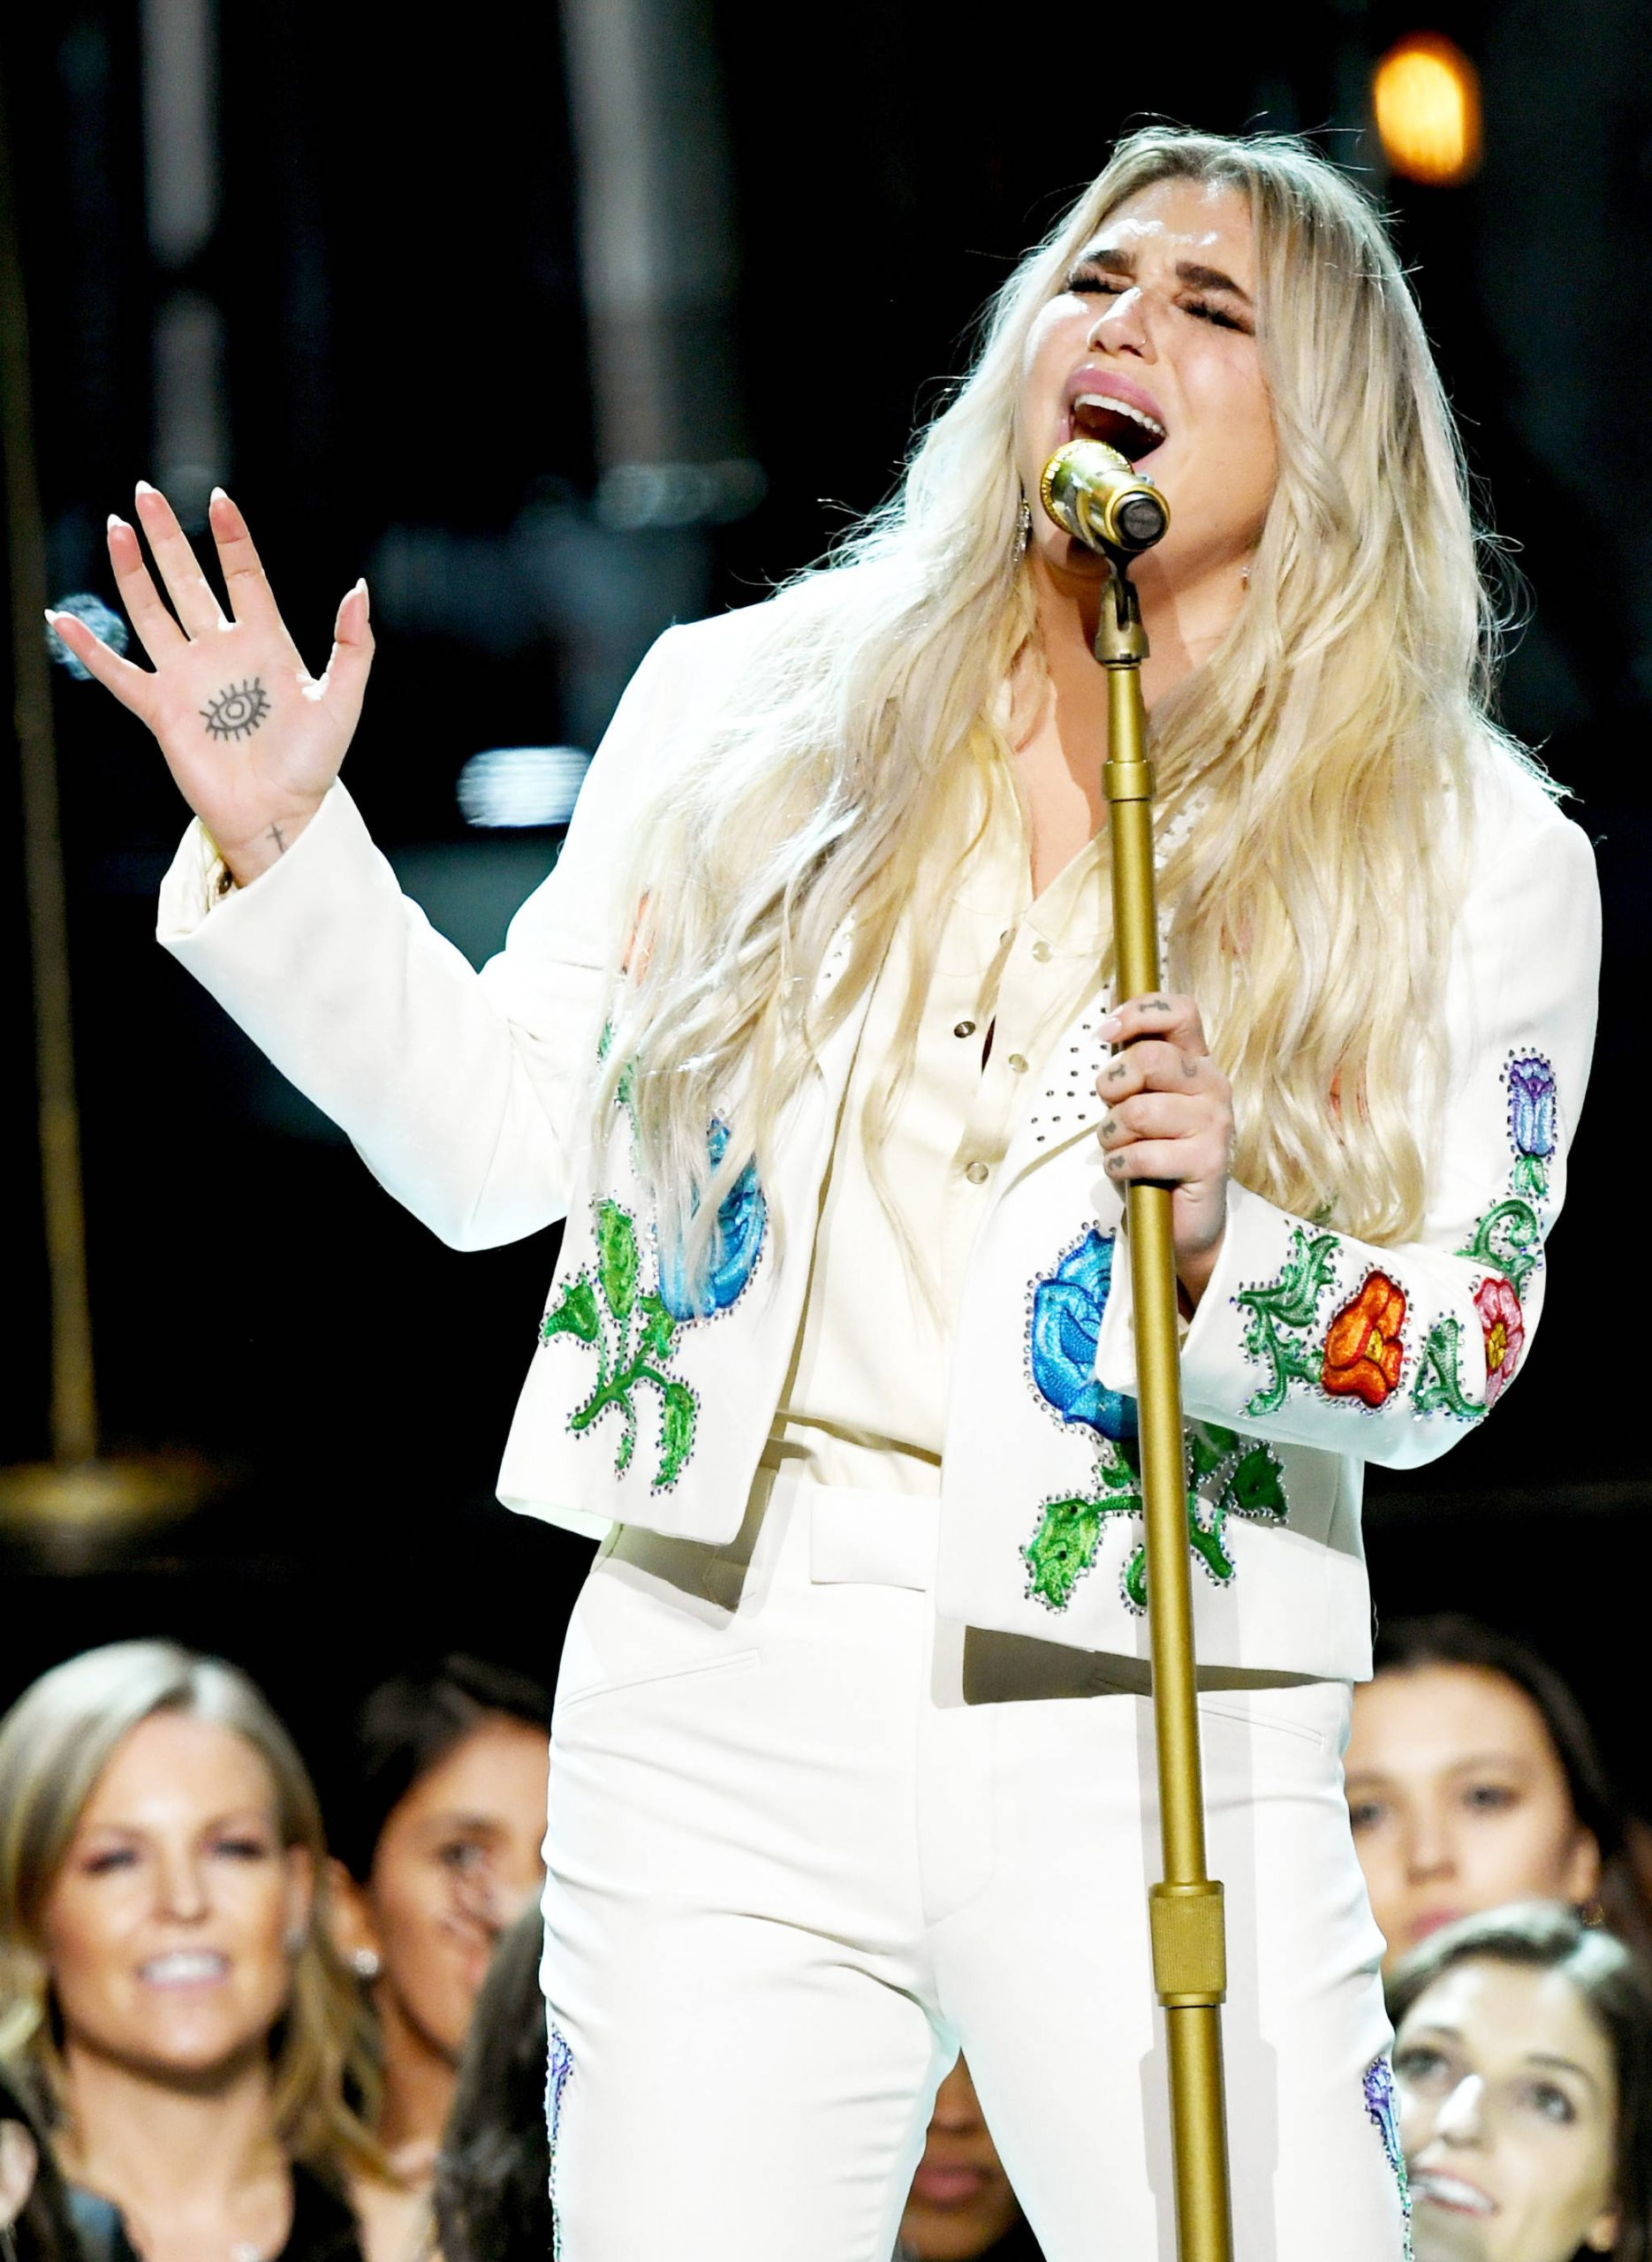 Kesha rocked the Grammy's with this powerful performance! #TimesUp